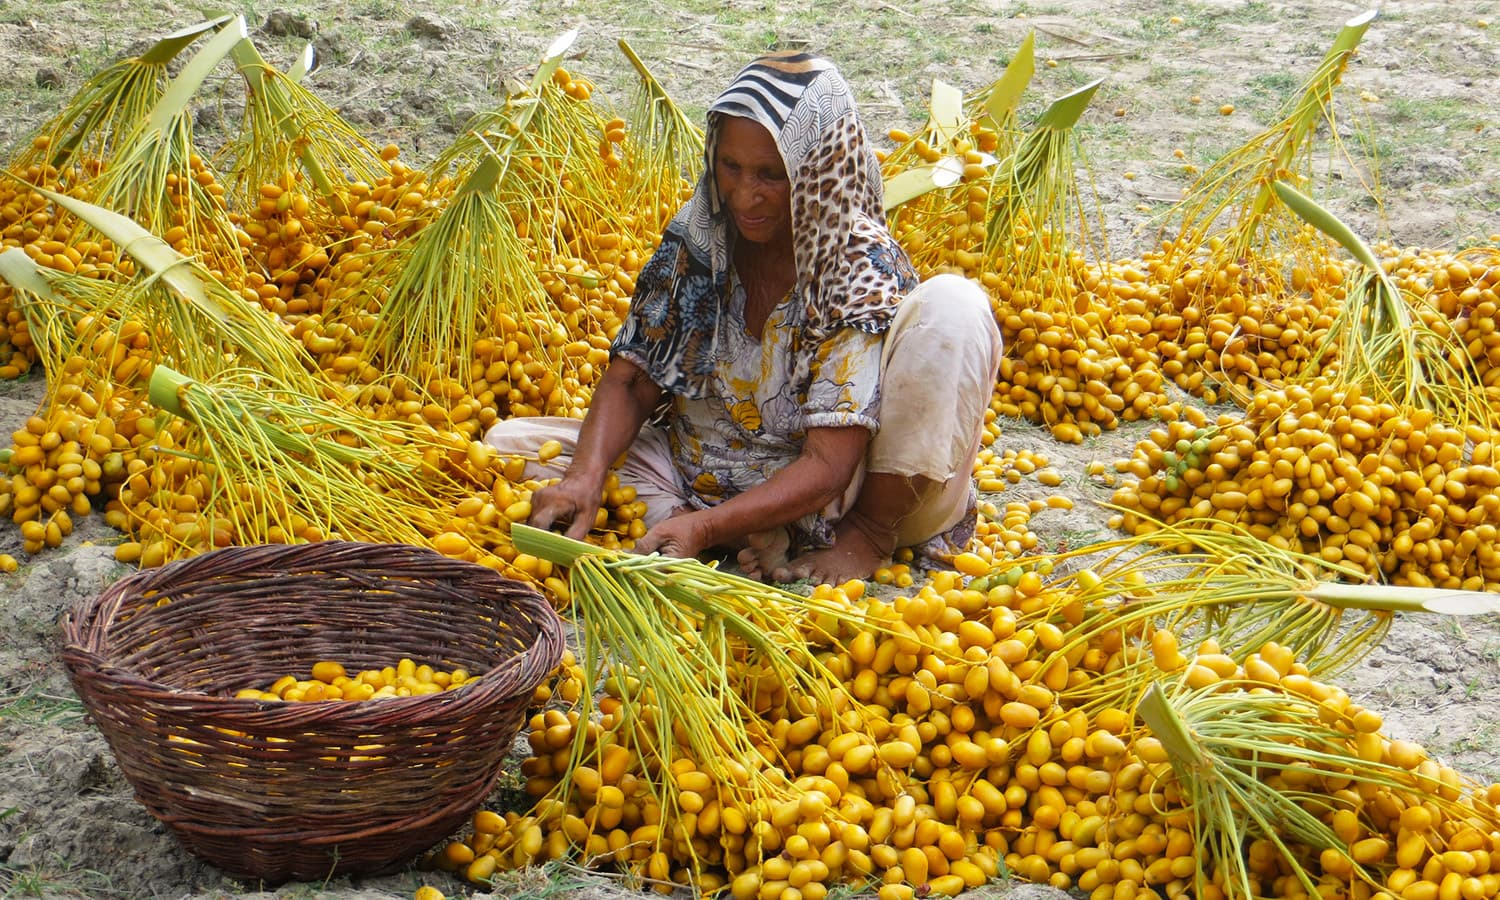 Pakistan is the sixth largest producer of dates in the world.